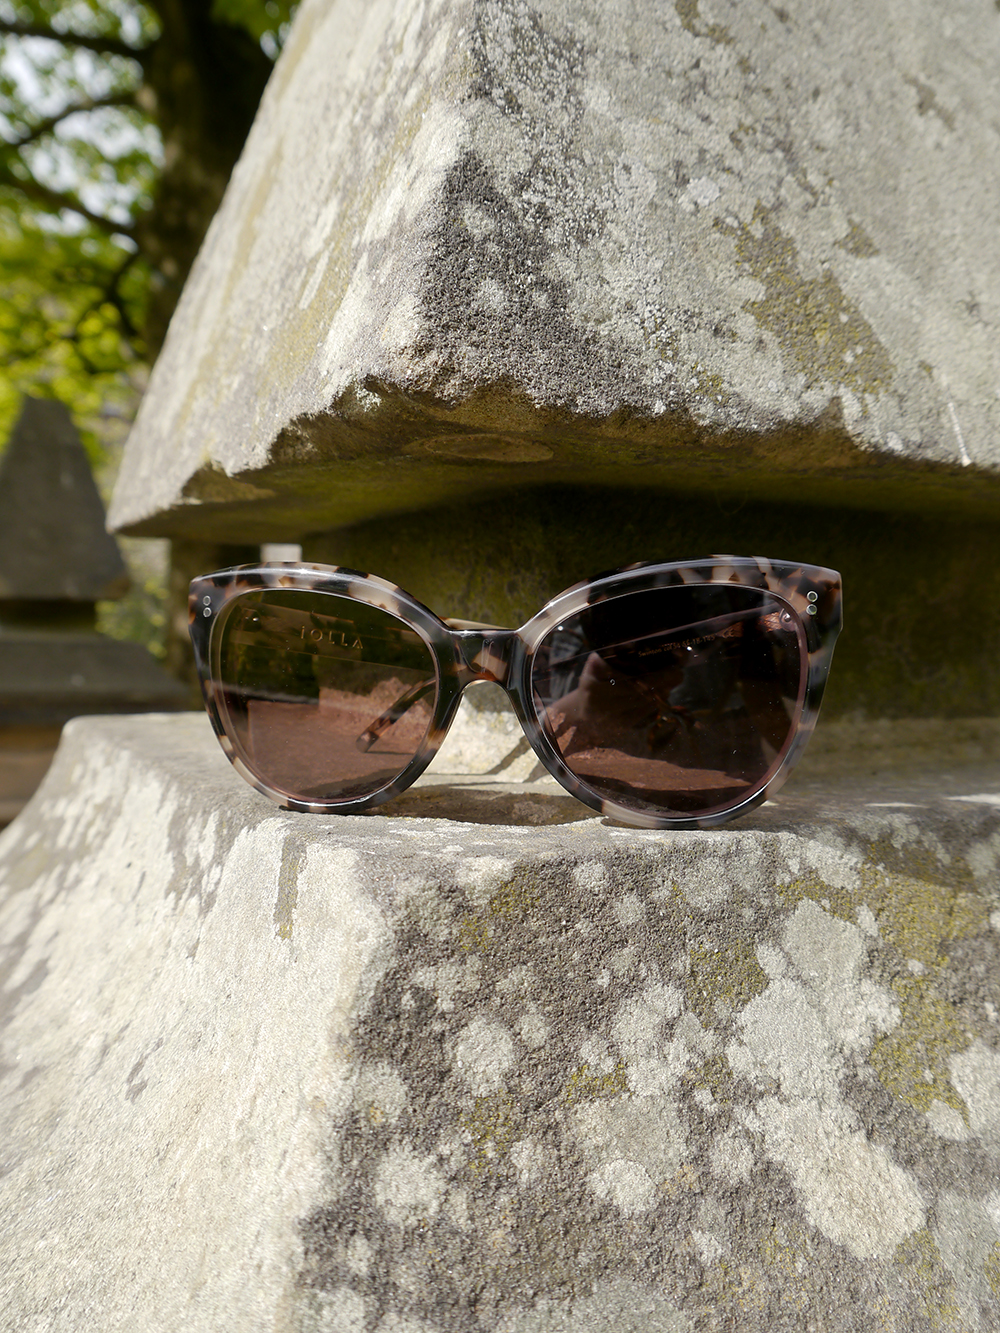 IOLLA Swinton tortoise shell sunglasses, IOLLA glasses, photoshoot in Stockbridge, oversized tortoishell catseye sunglasses